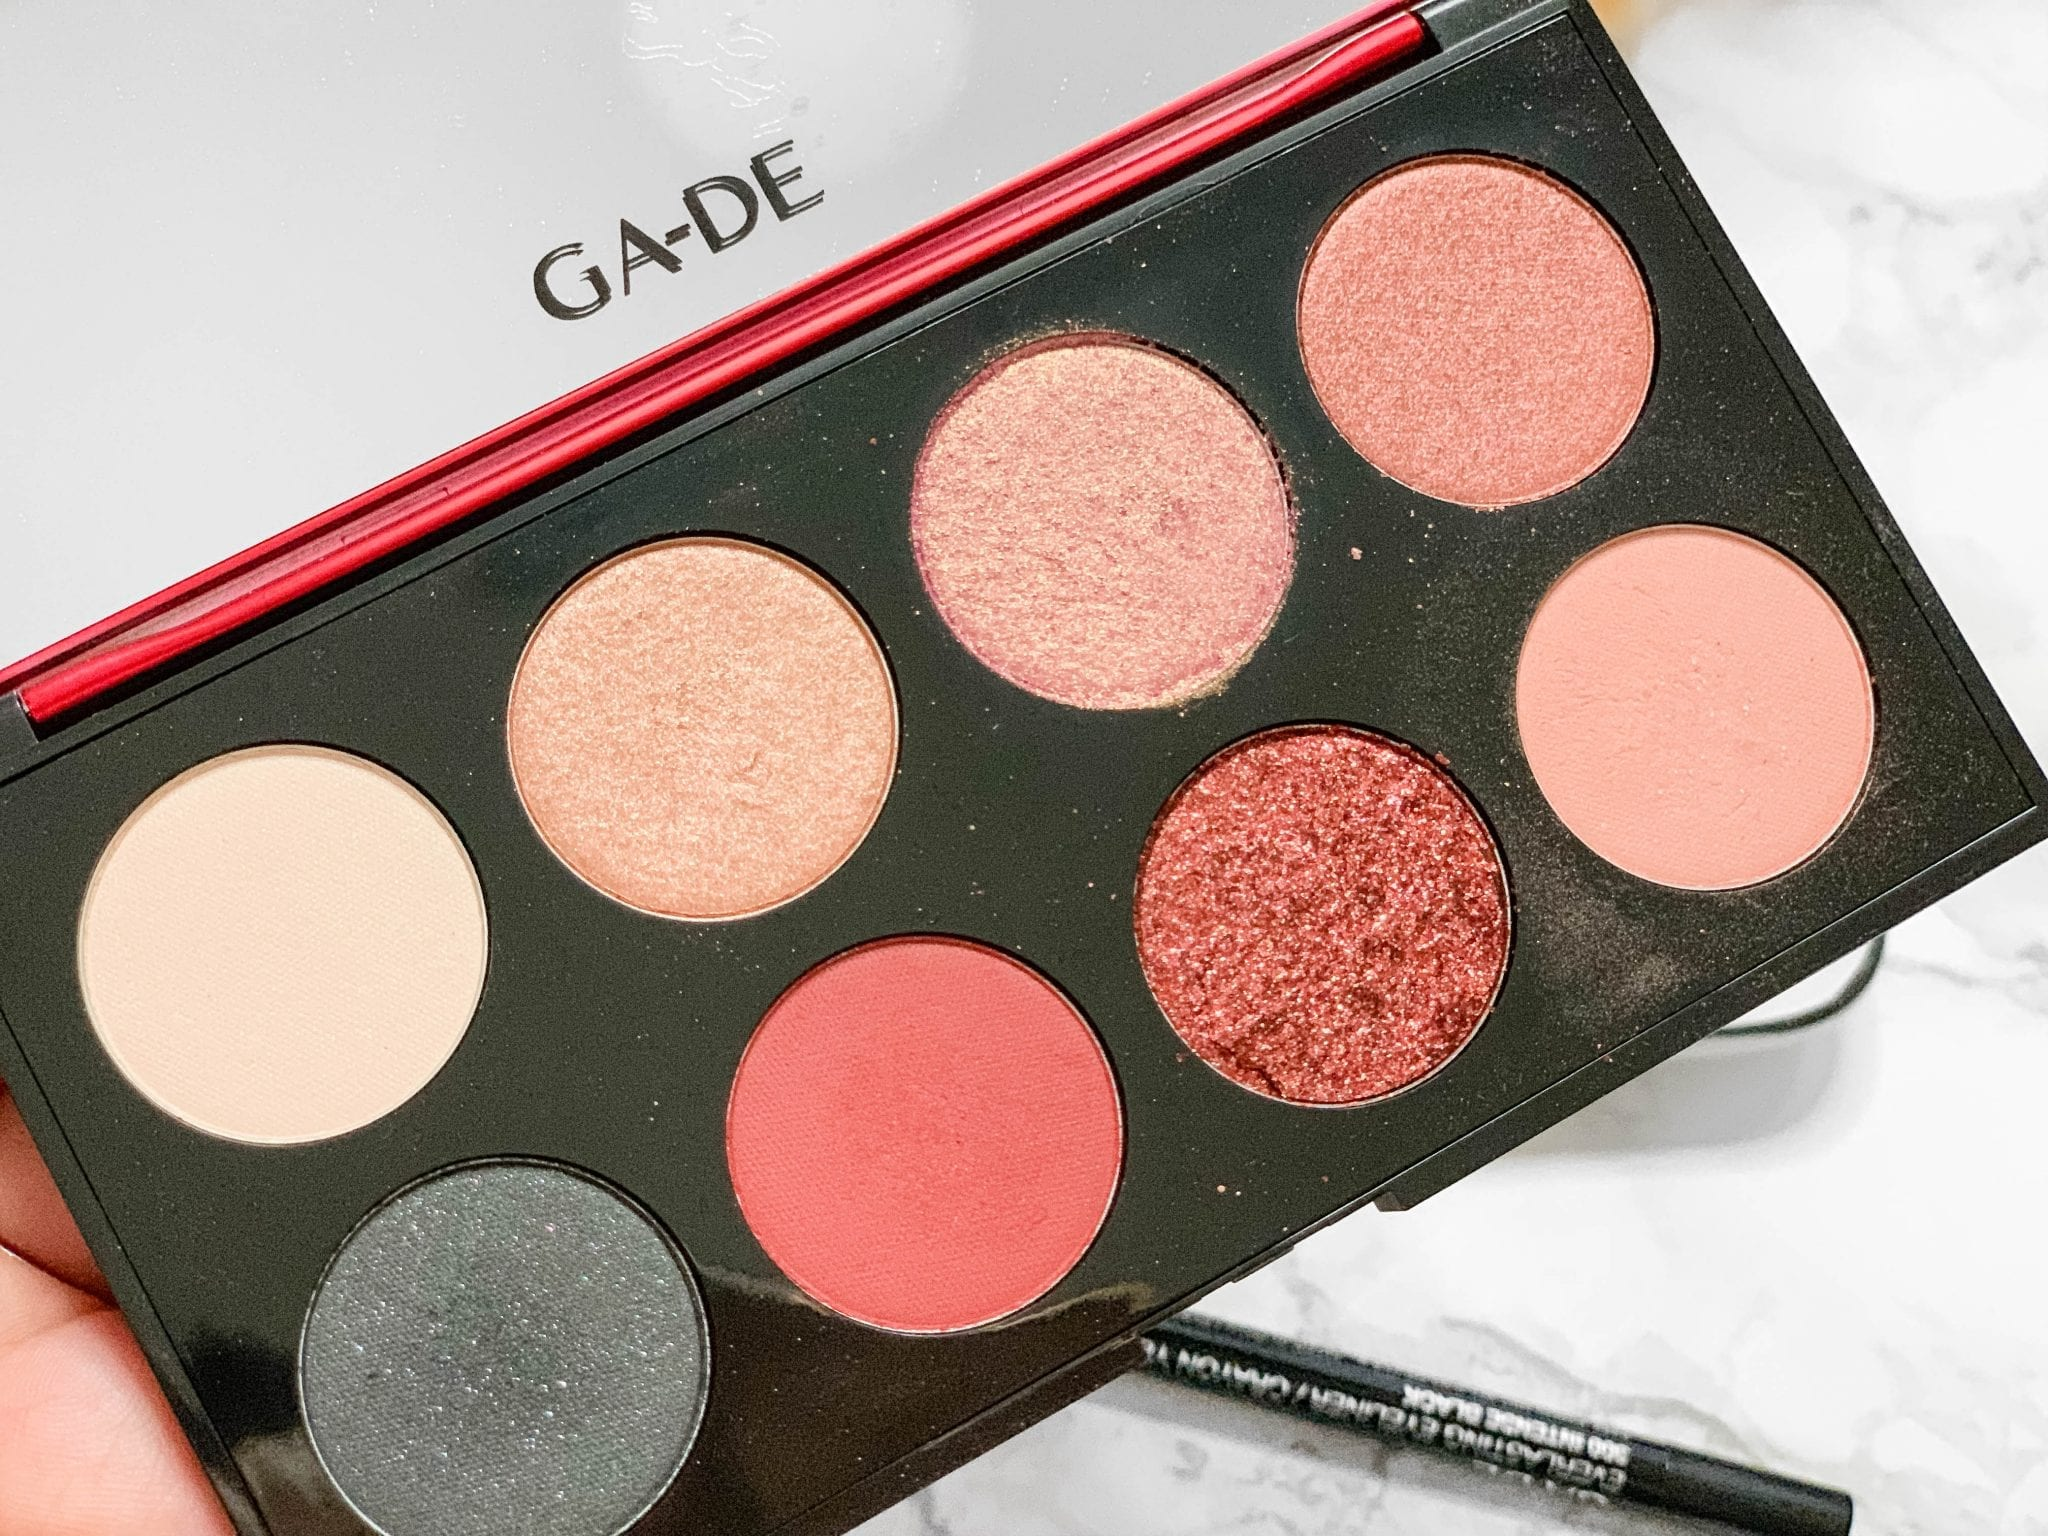 Sparkly Valentine's Day Makeup with Ga-De Glamhour